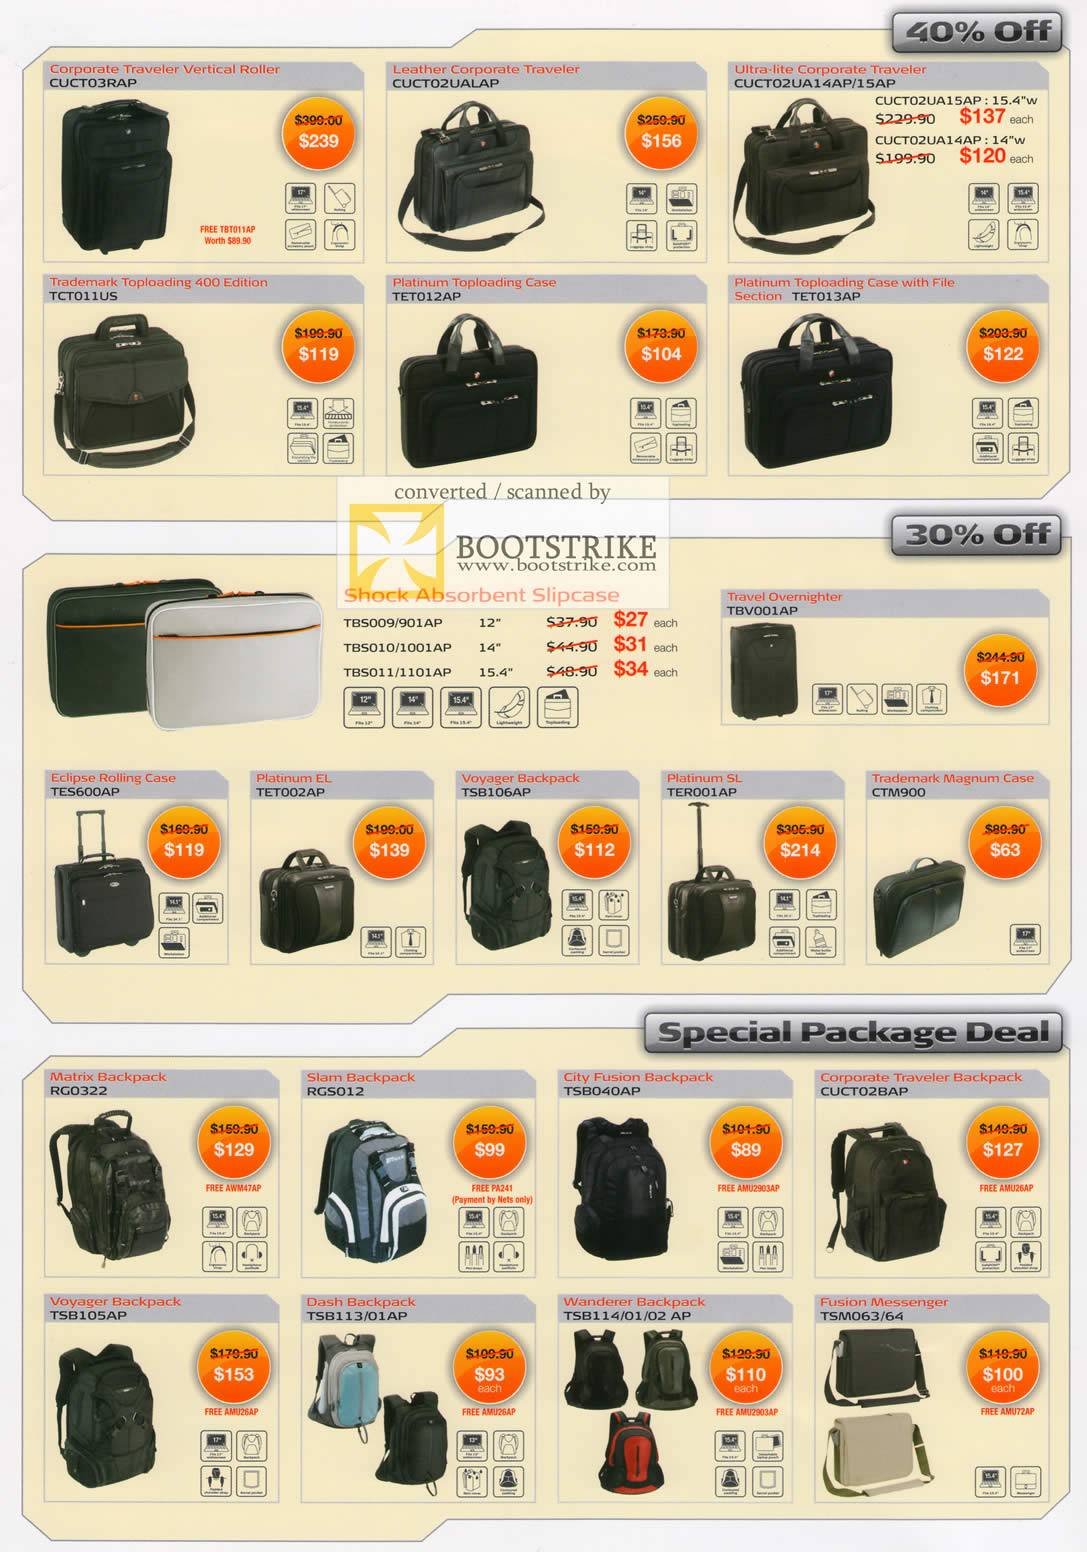 Comex 2009 price list image brochure of Targus Corporate Traveller Vertical Roller Case Backpack Messenger